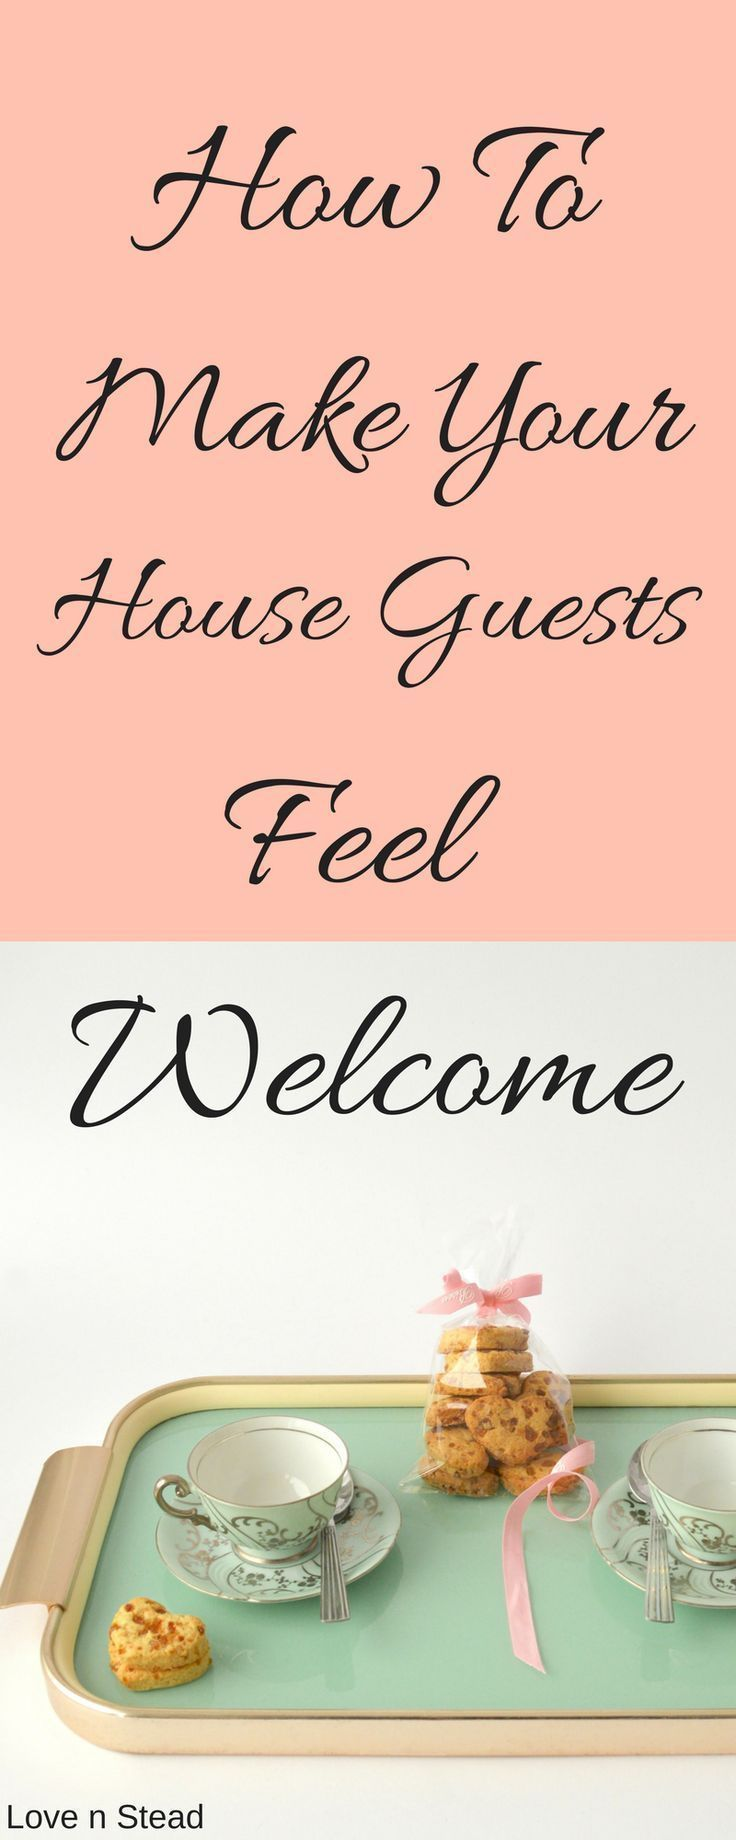 Ways to Make Your House Guests Feel Make it